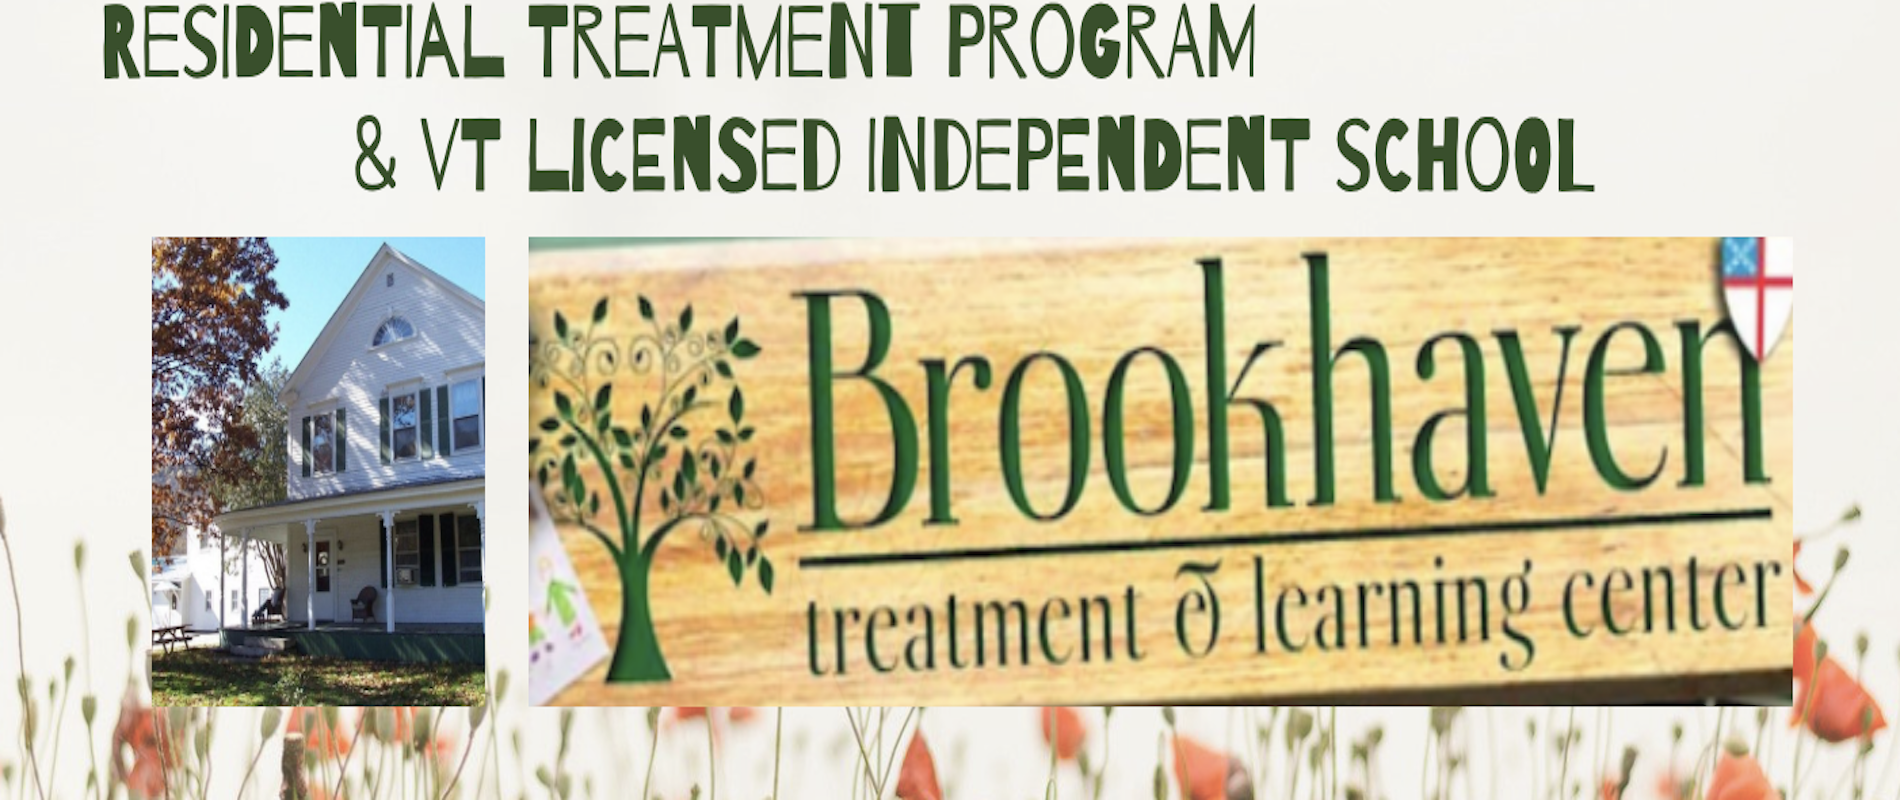 Brookhaven Treatment & Learning Center